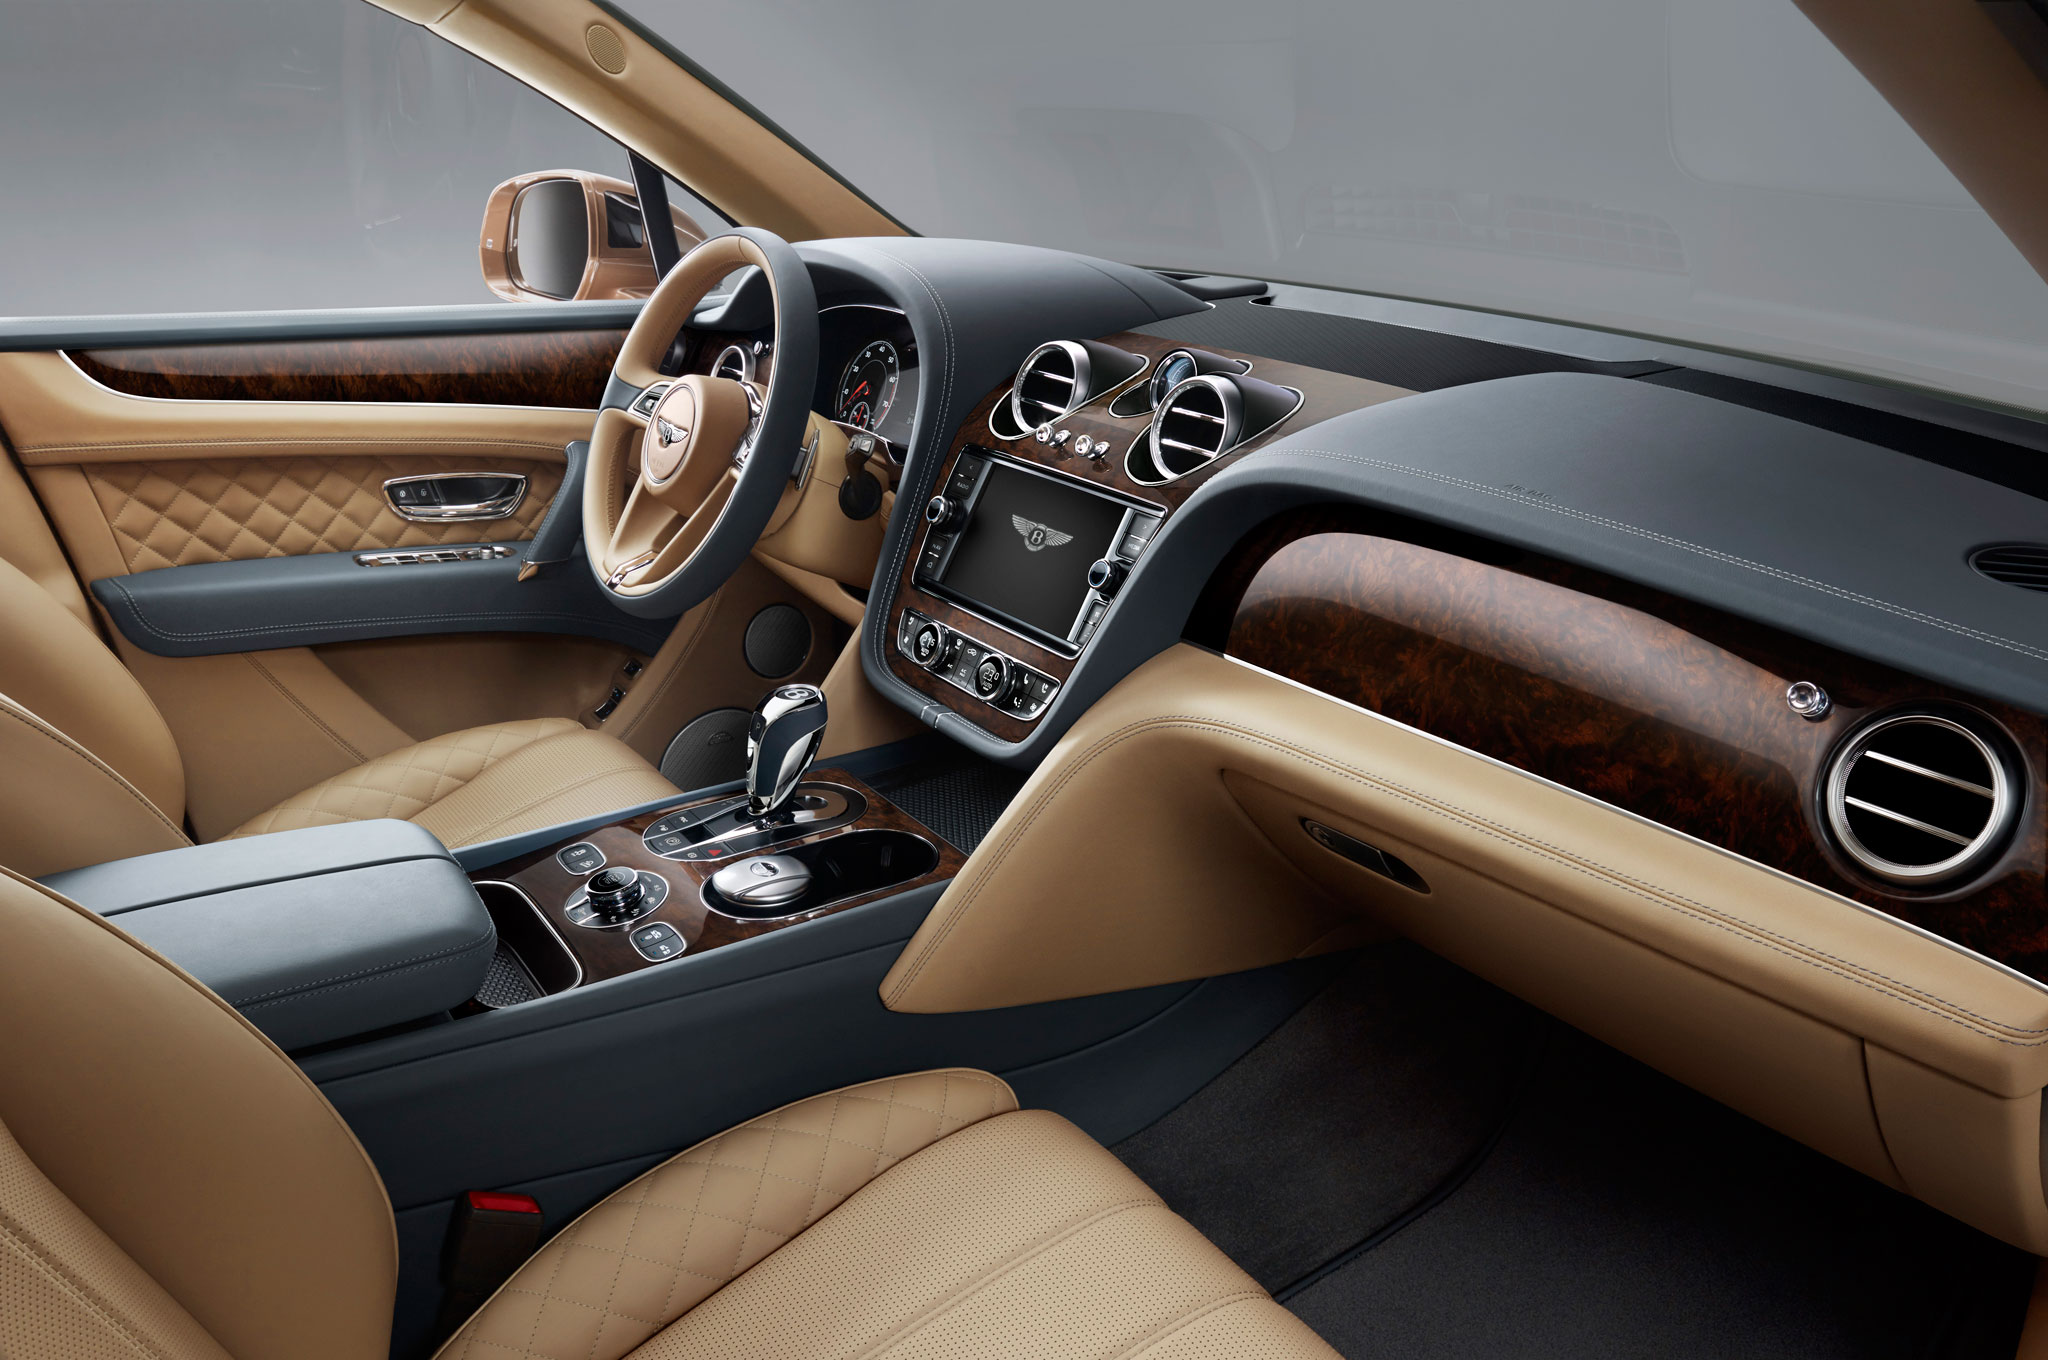 2017 Bentley Bentayga Dashboard Interior (Photo 3 of 16)